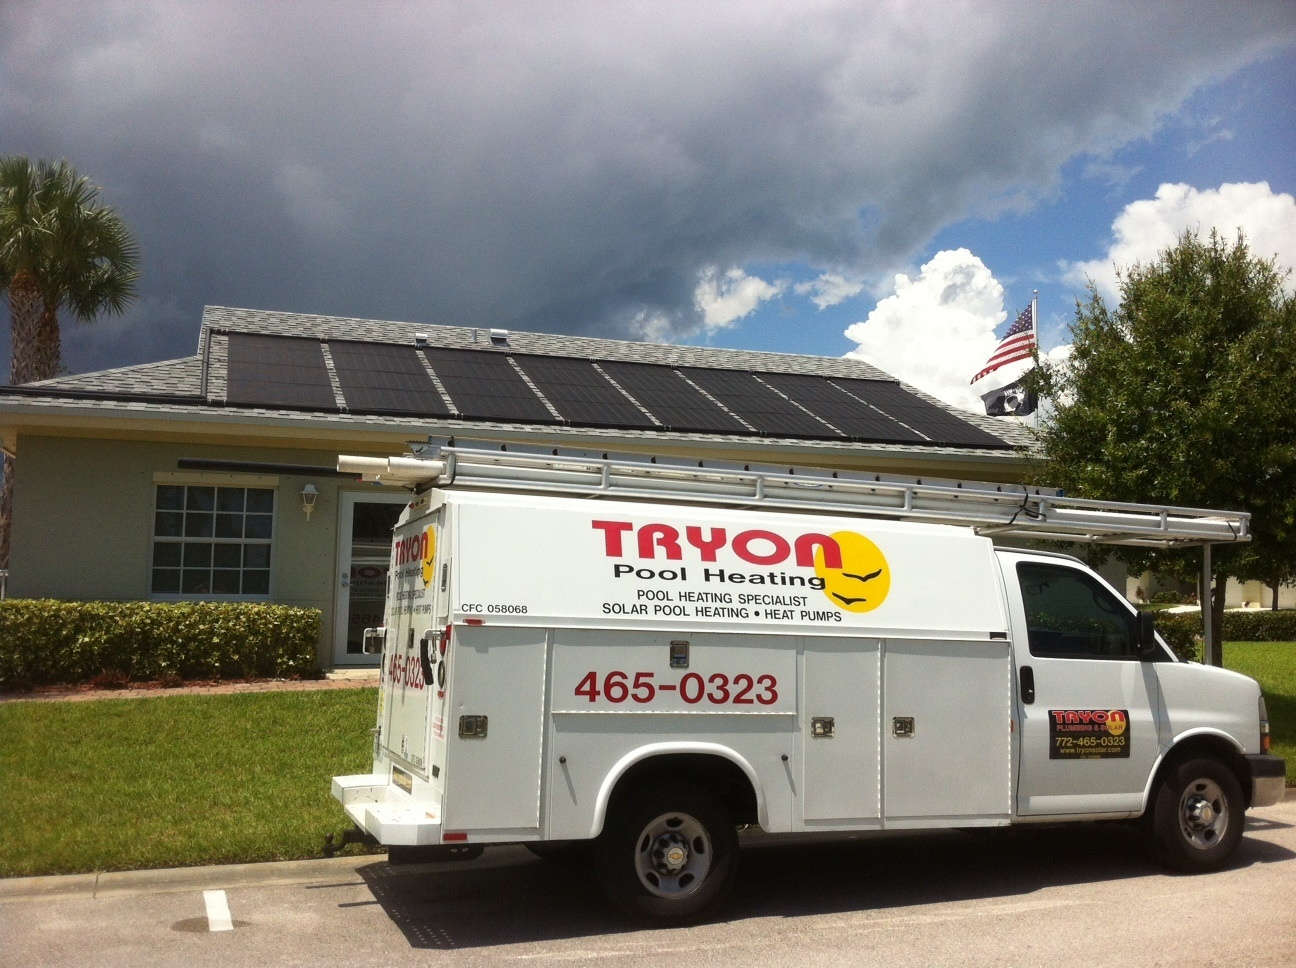 Tryon Pool Heating in Fort Pierce, FL, photo #3